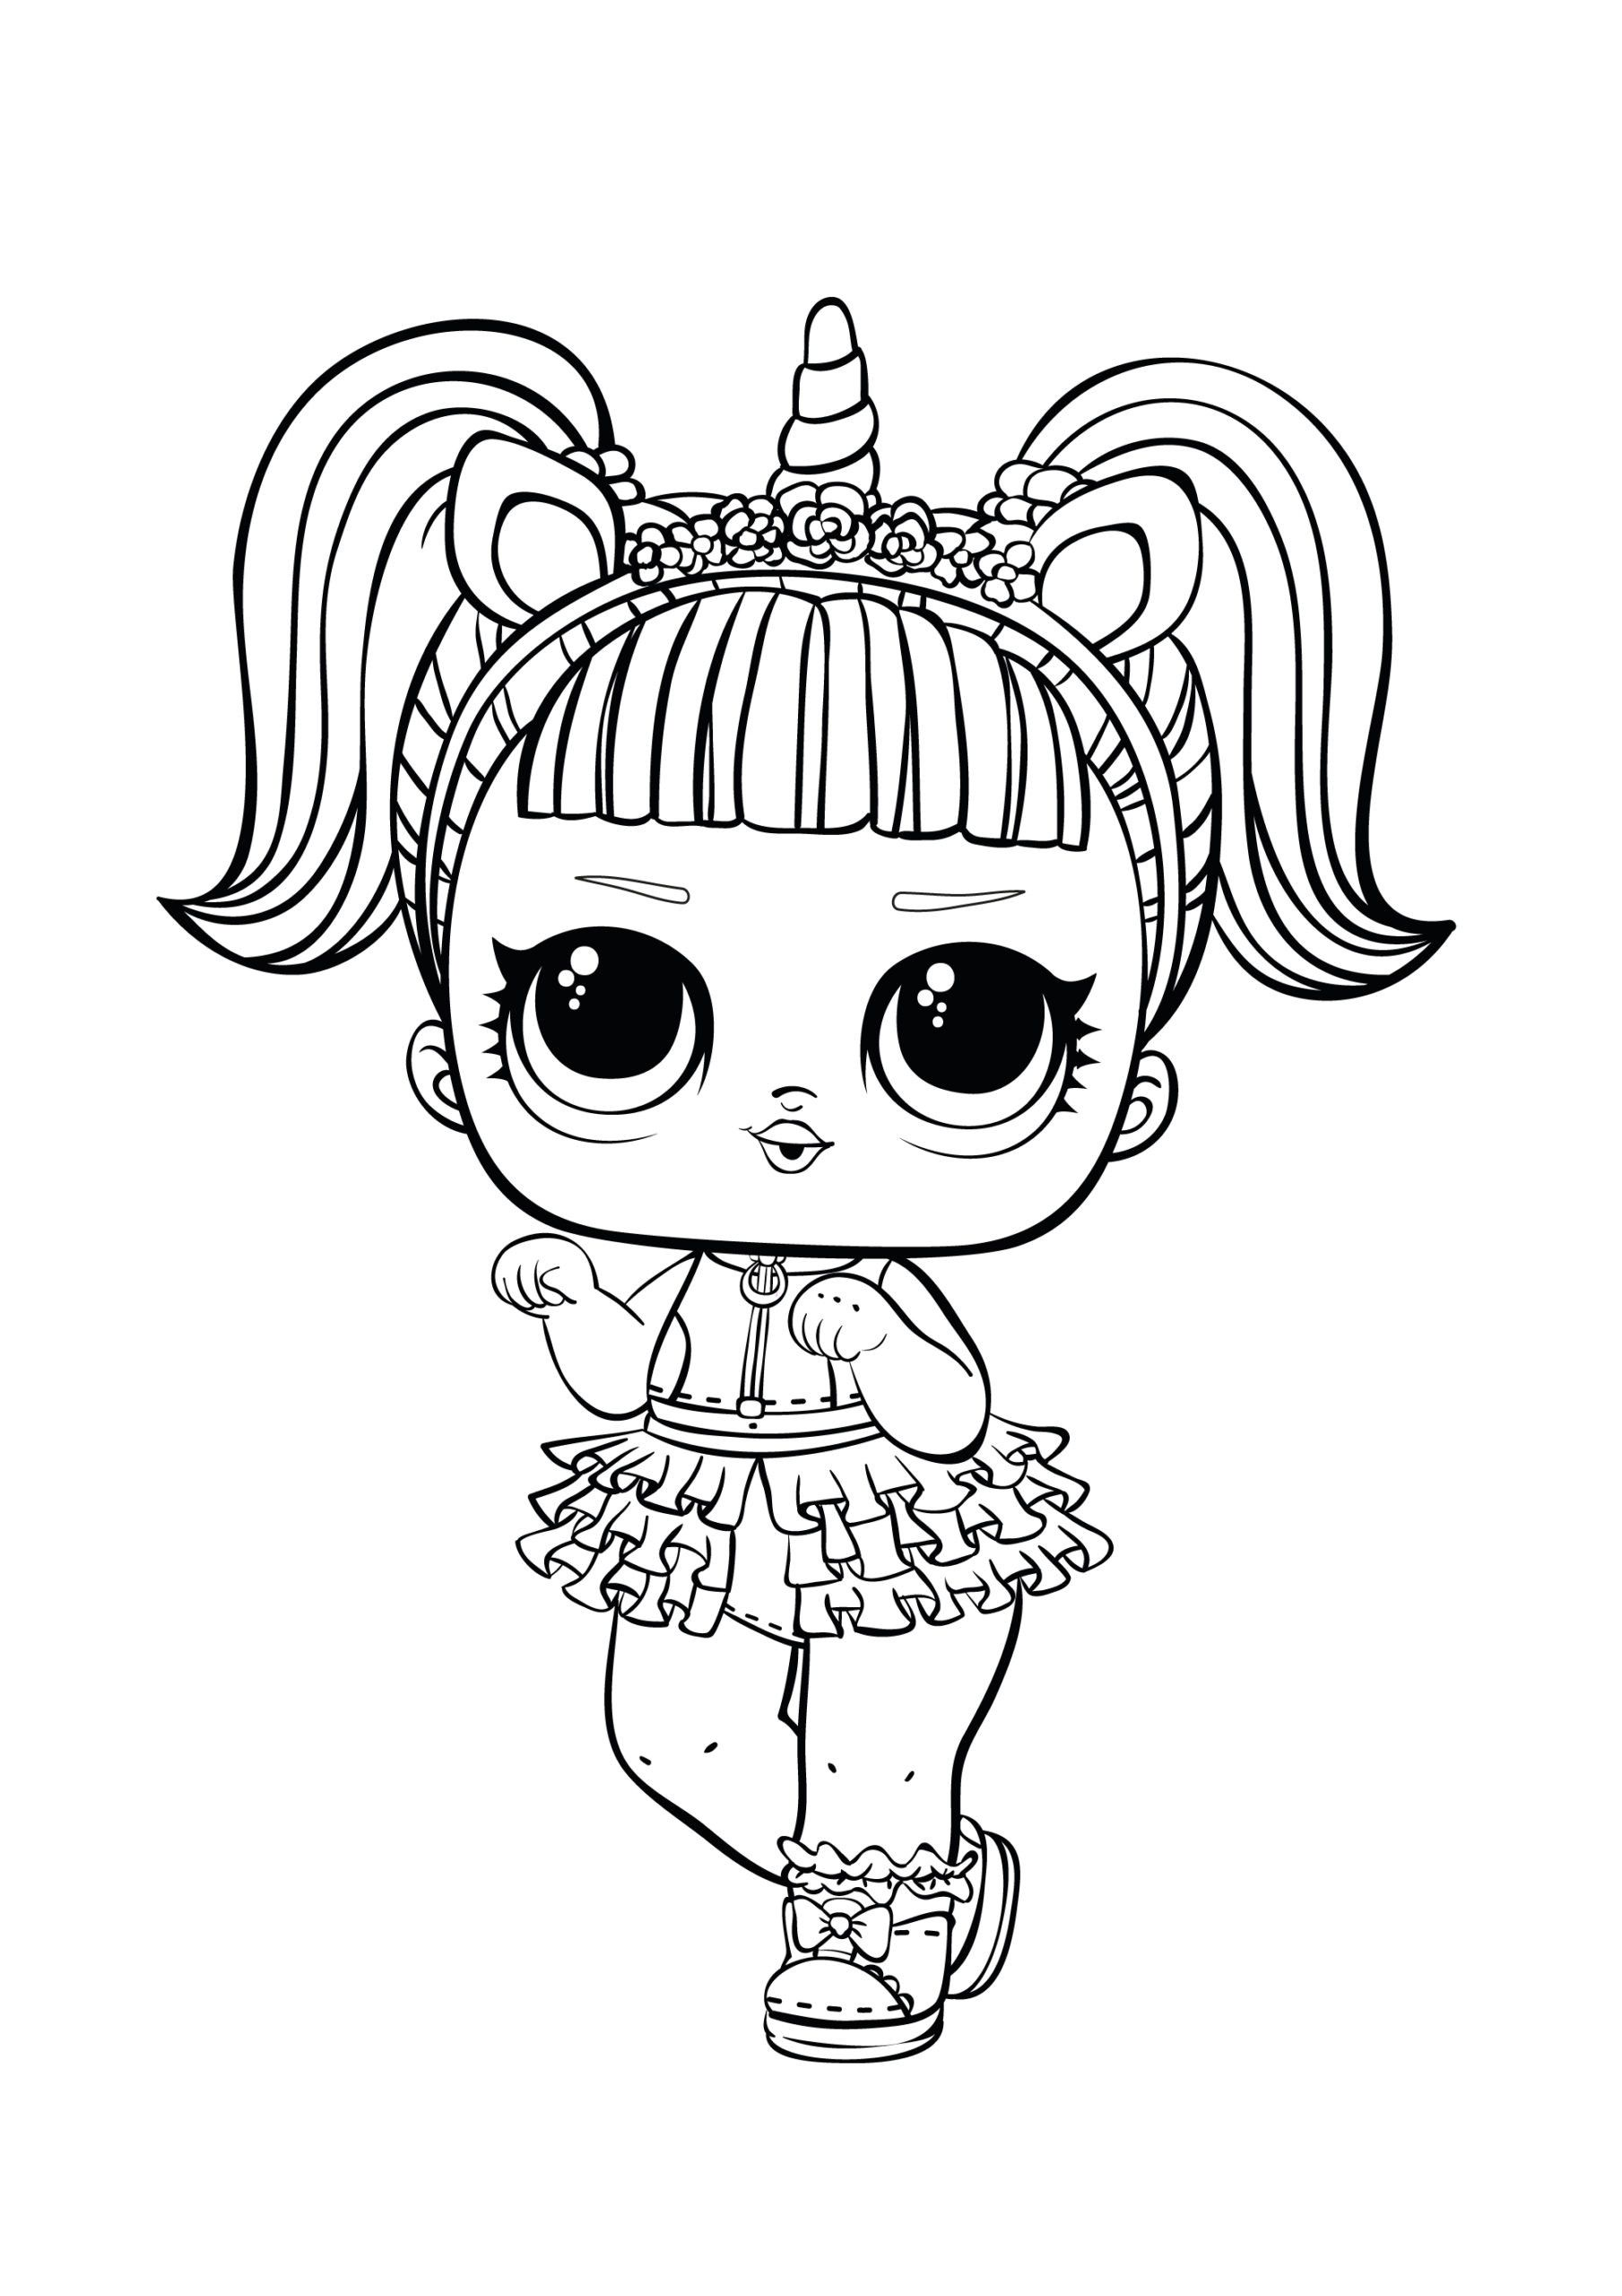 Unicorn Lol Coloring Page Youngandtae Com Unicorn Coloring Pages Kitty Coloring Hello Kitty Coloring